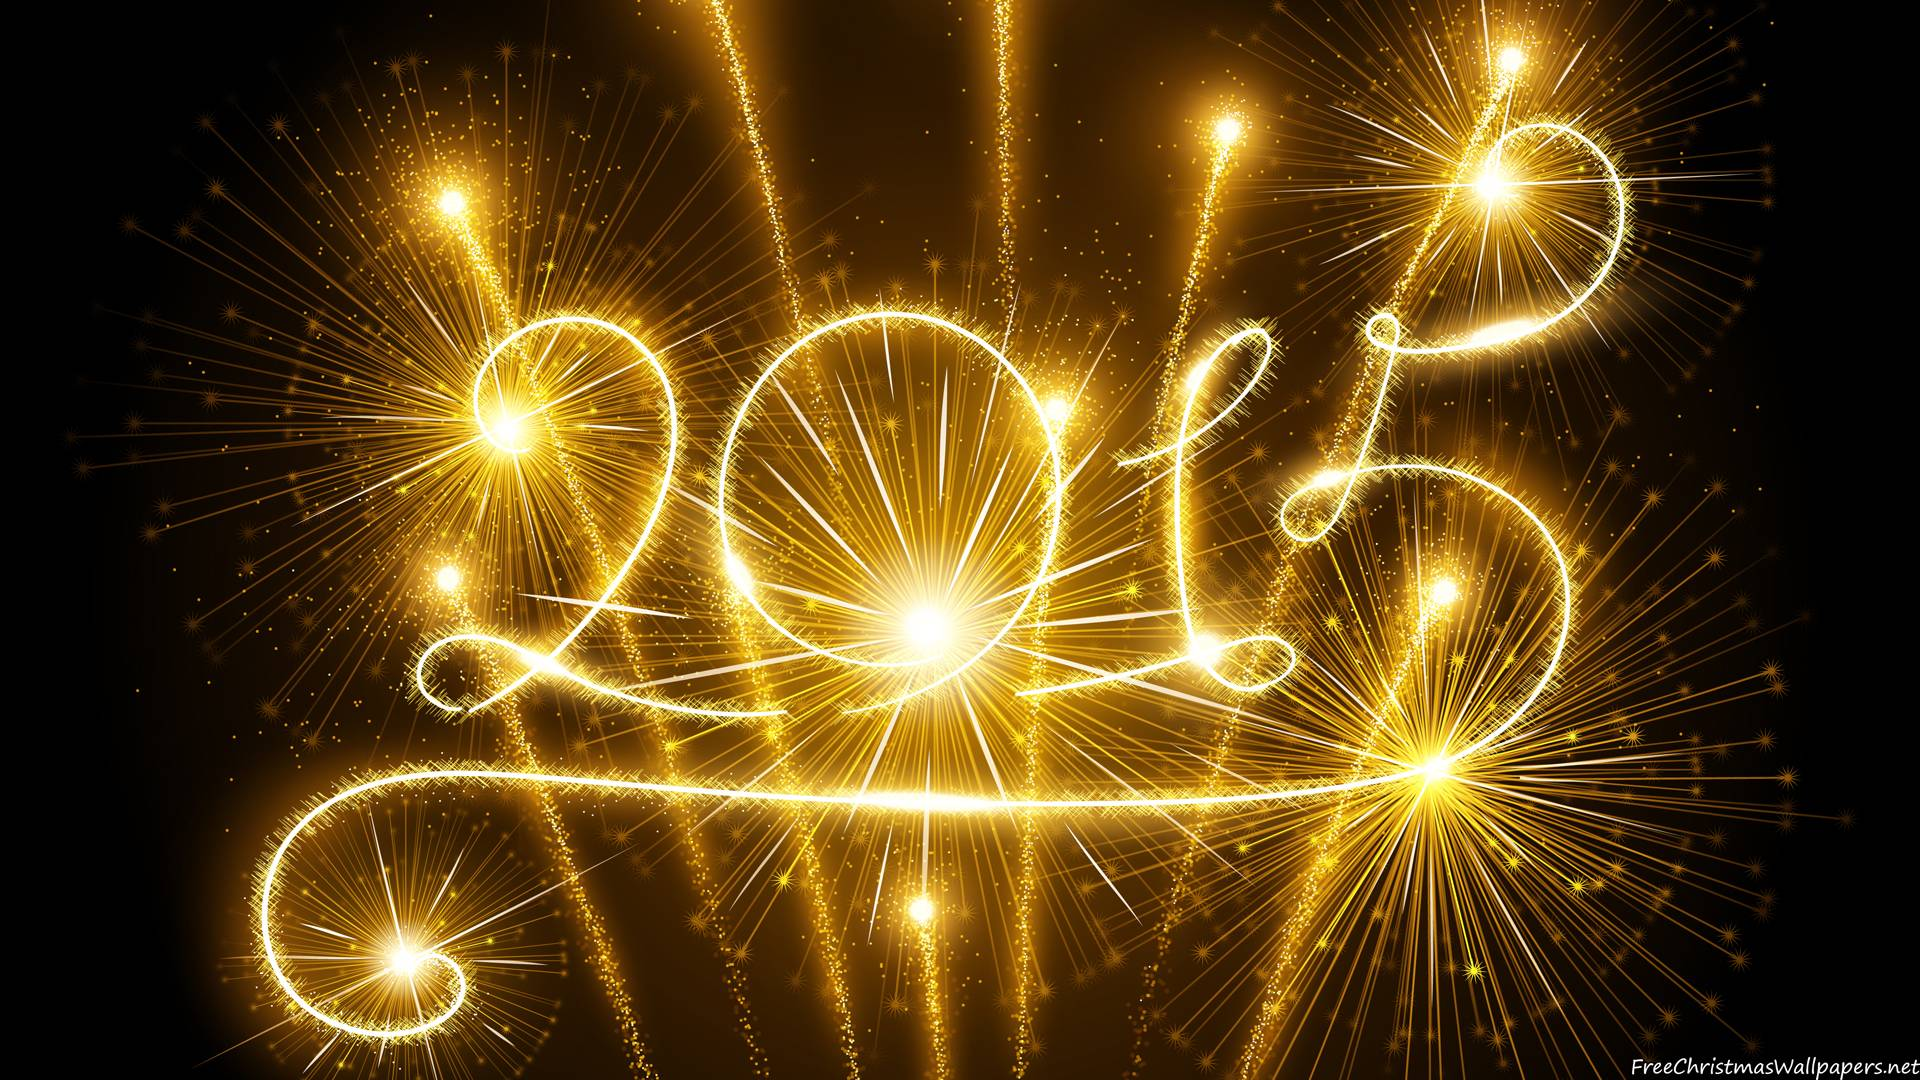 wallpapers of happy new year 2015 - wallpaper cave